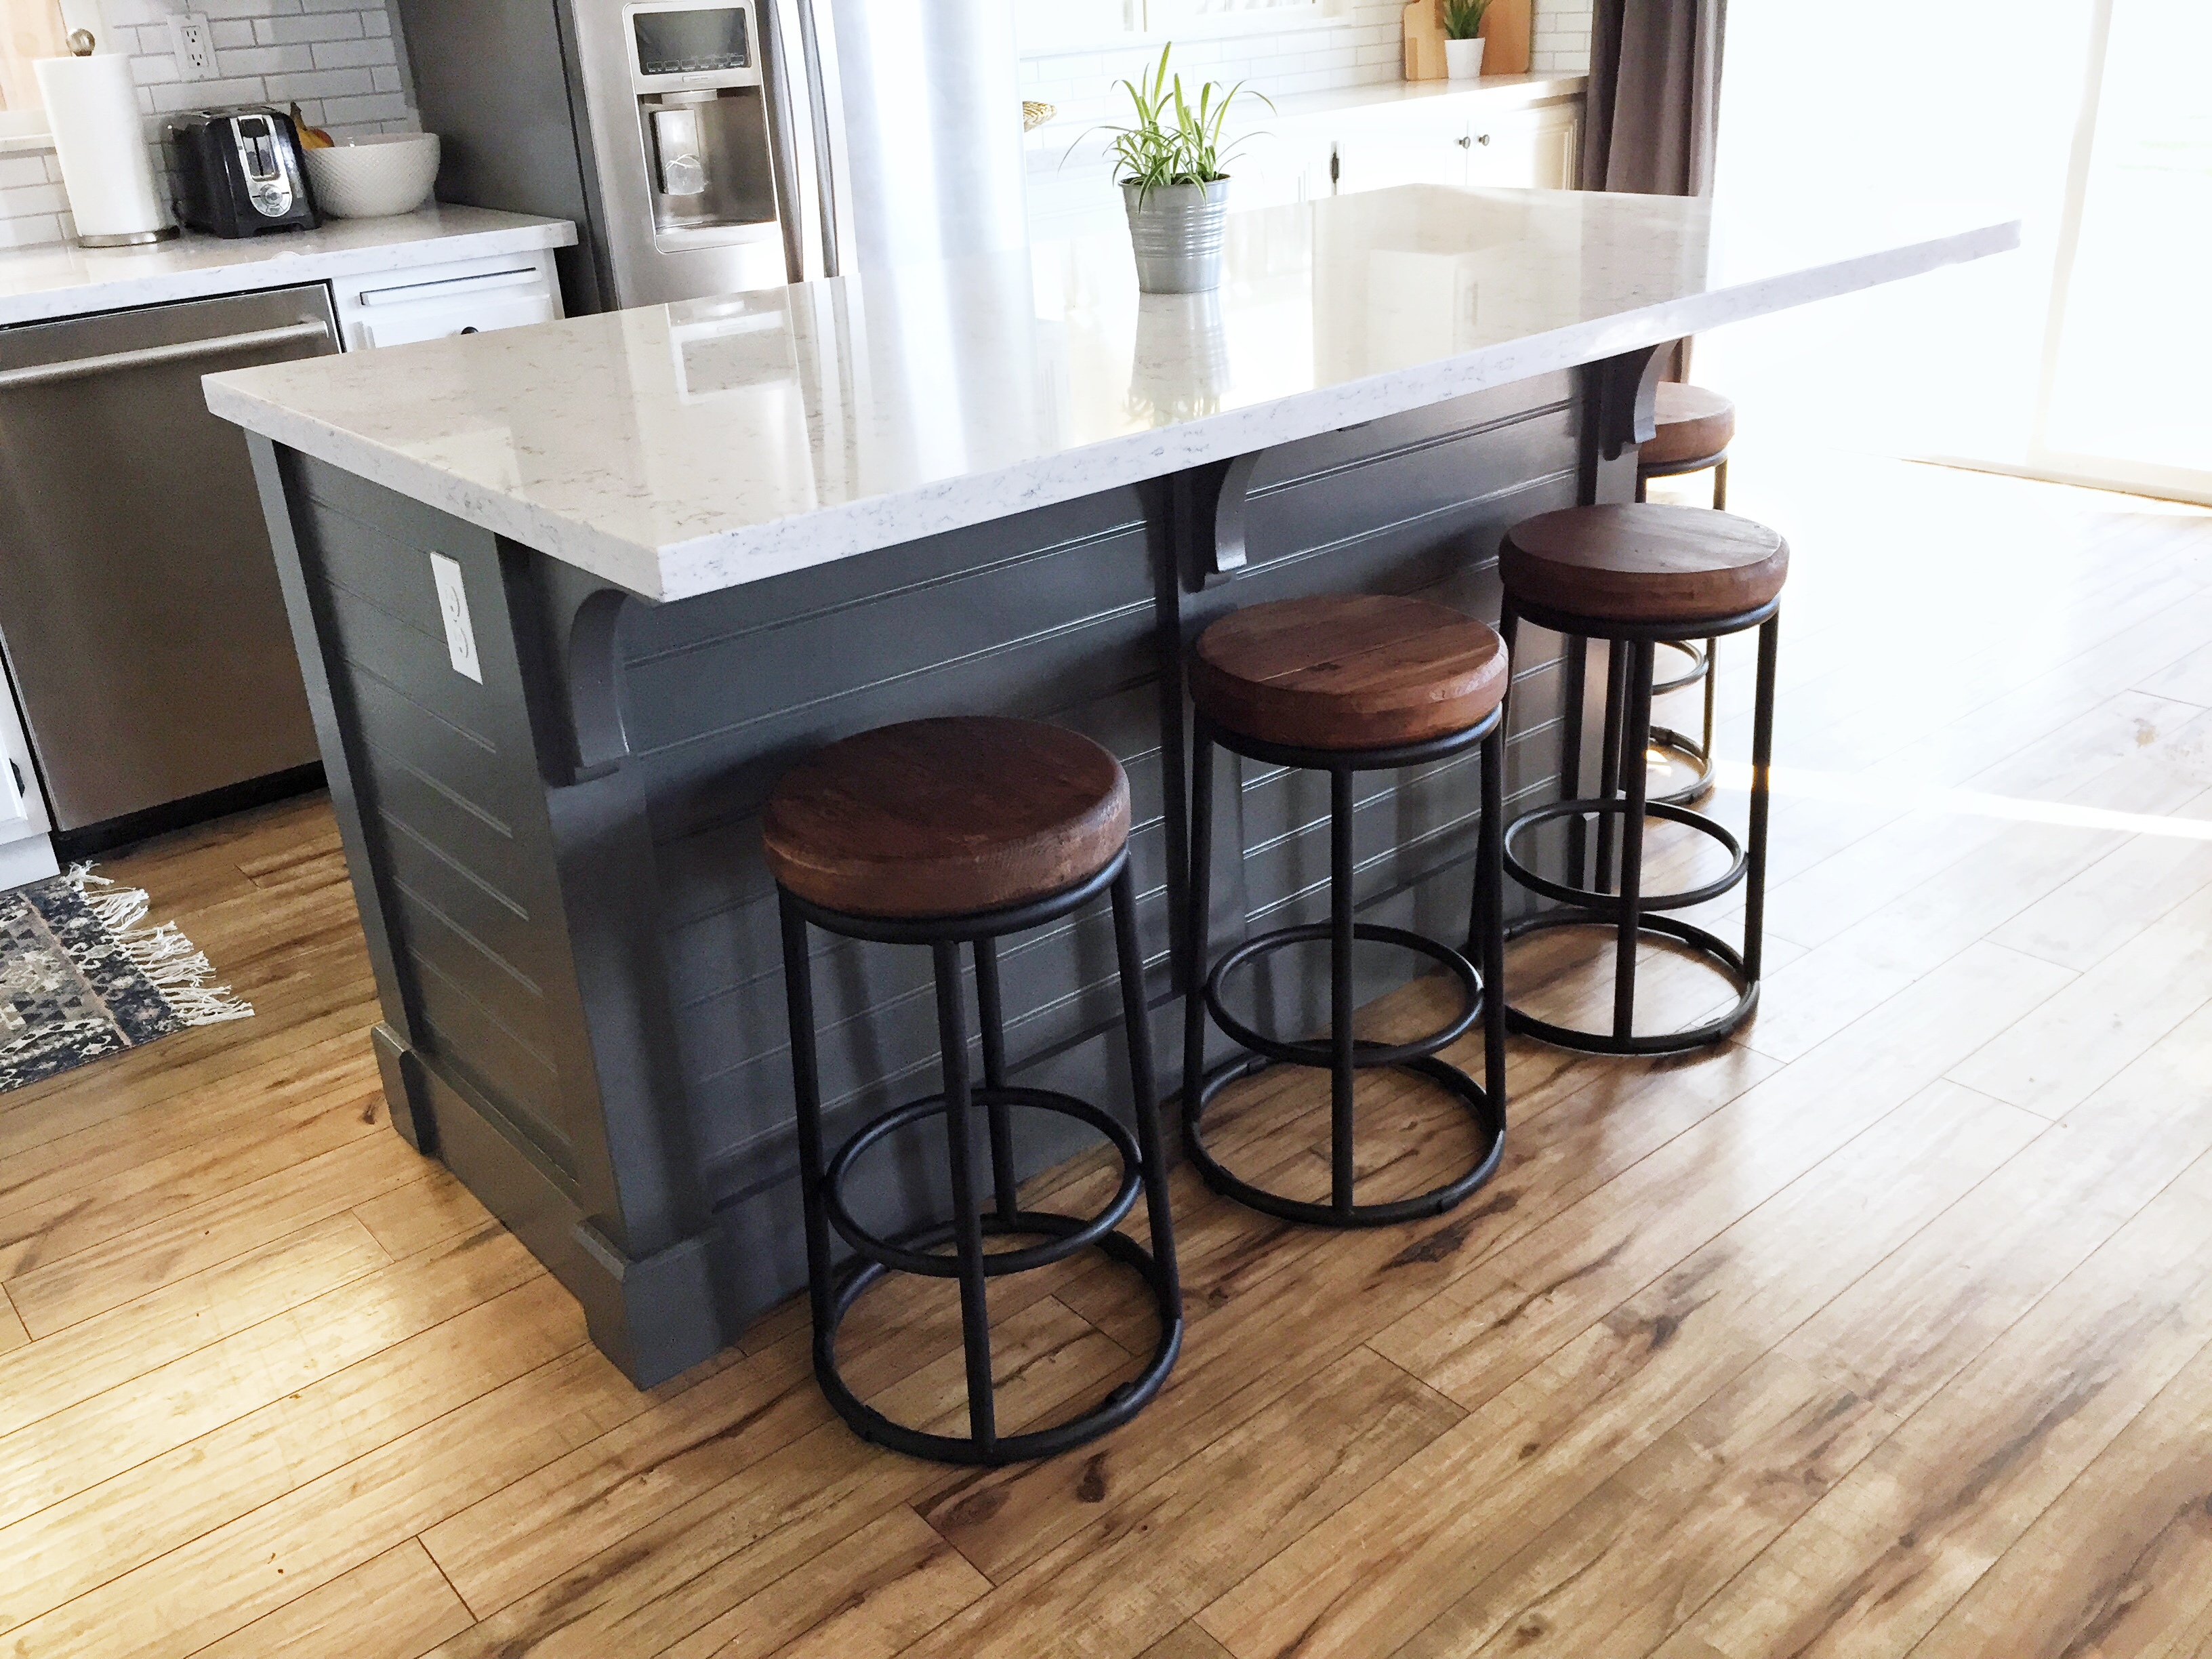 Kitchen island make it yourself save big domestic for How to build a kitchen island with seating